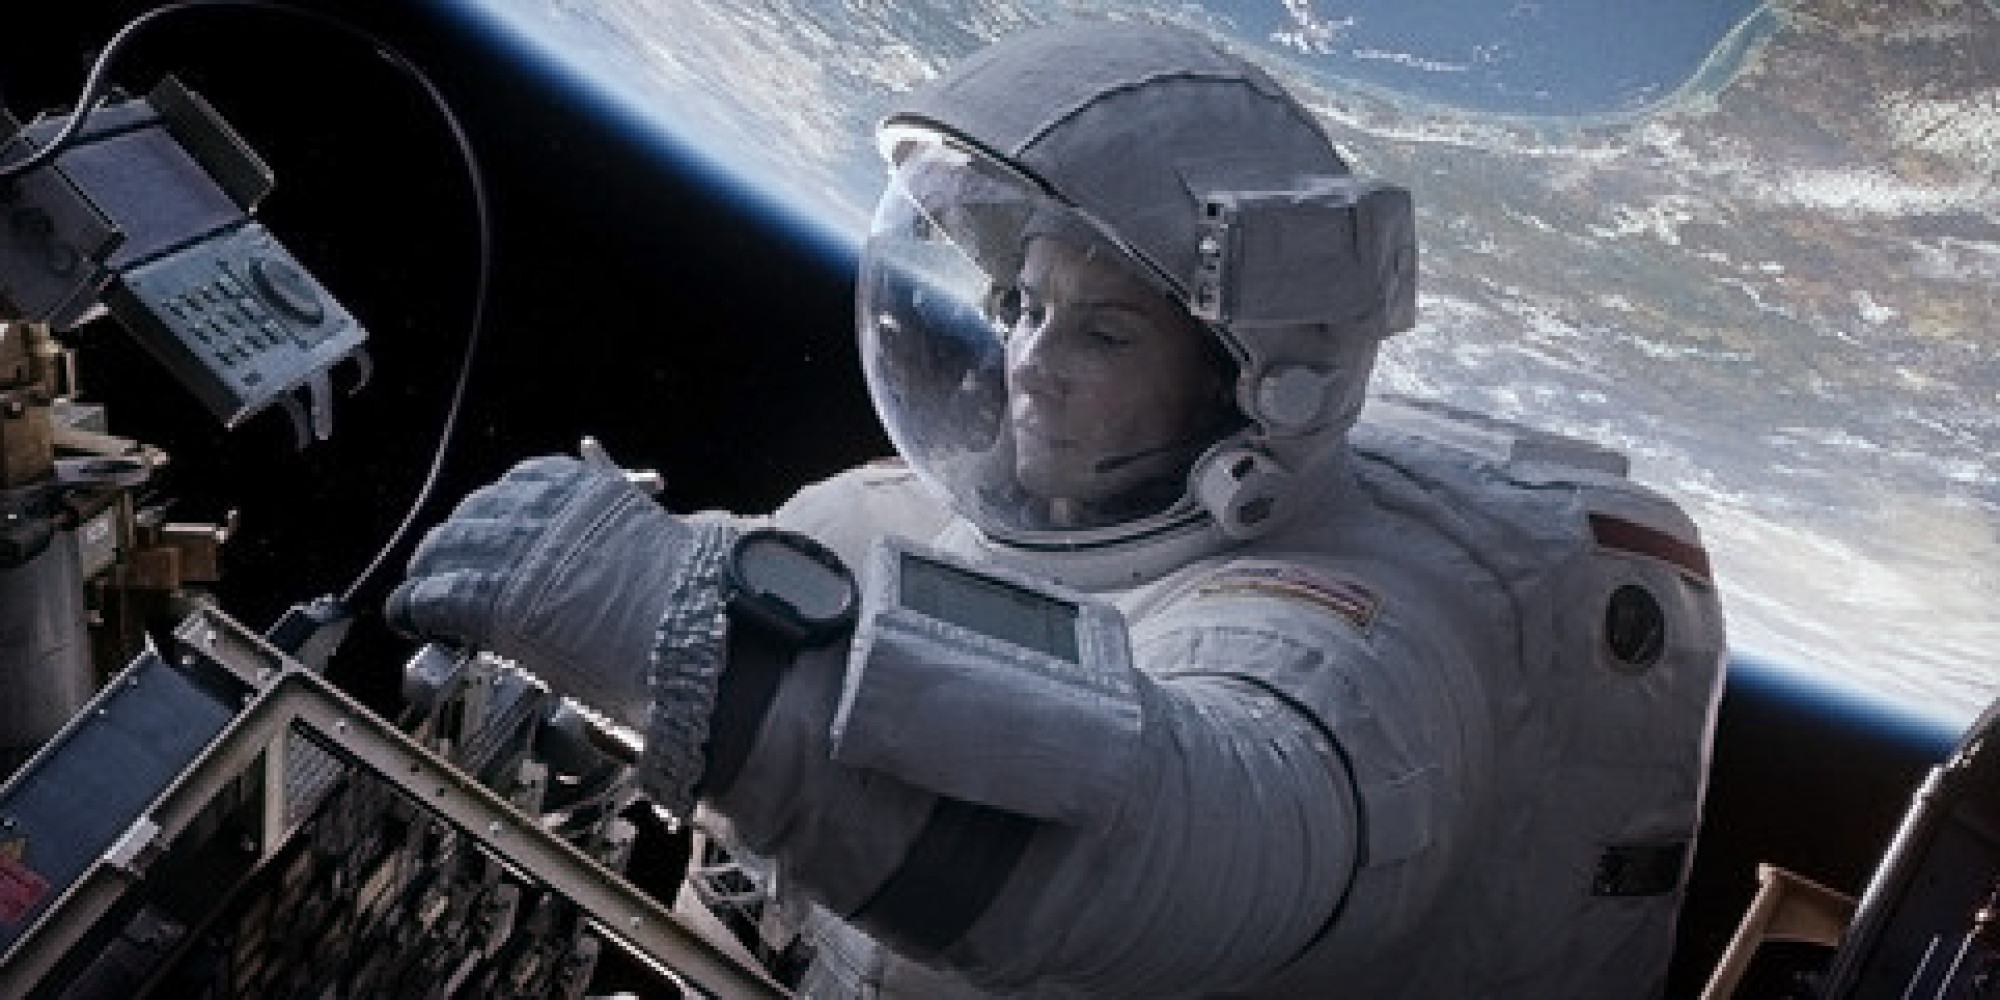 astronaut from gravity - photo #8